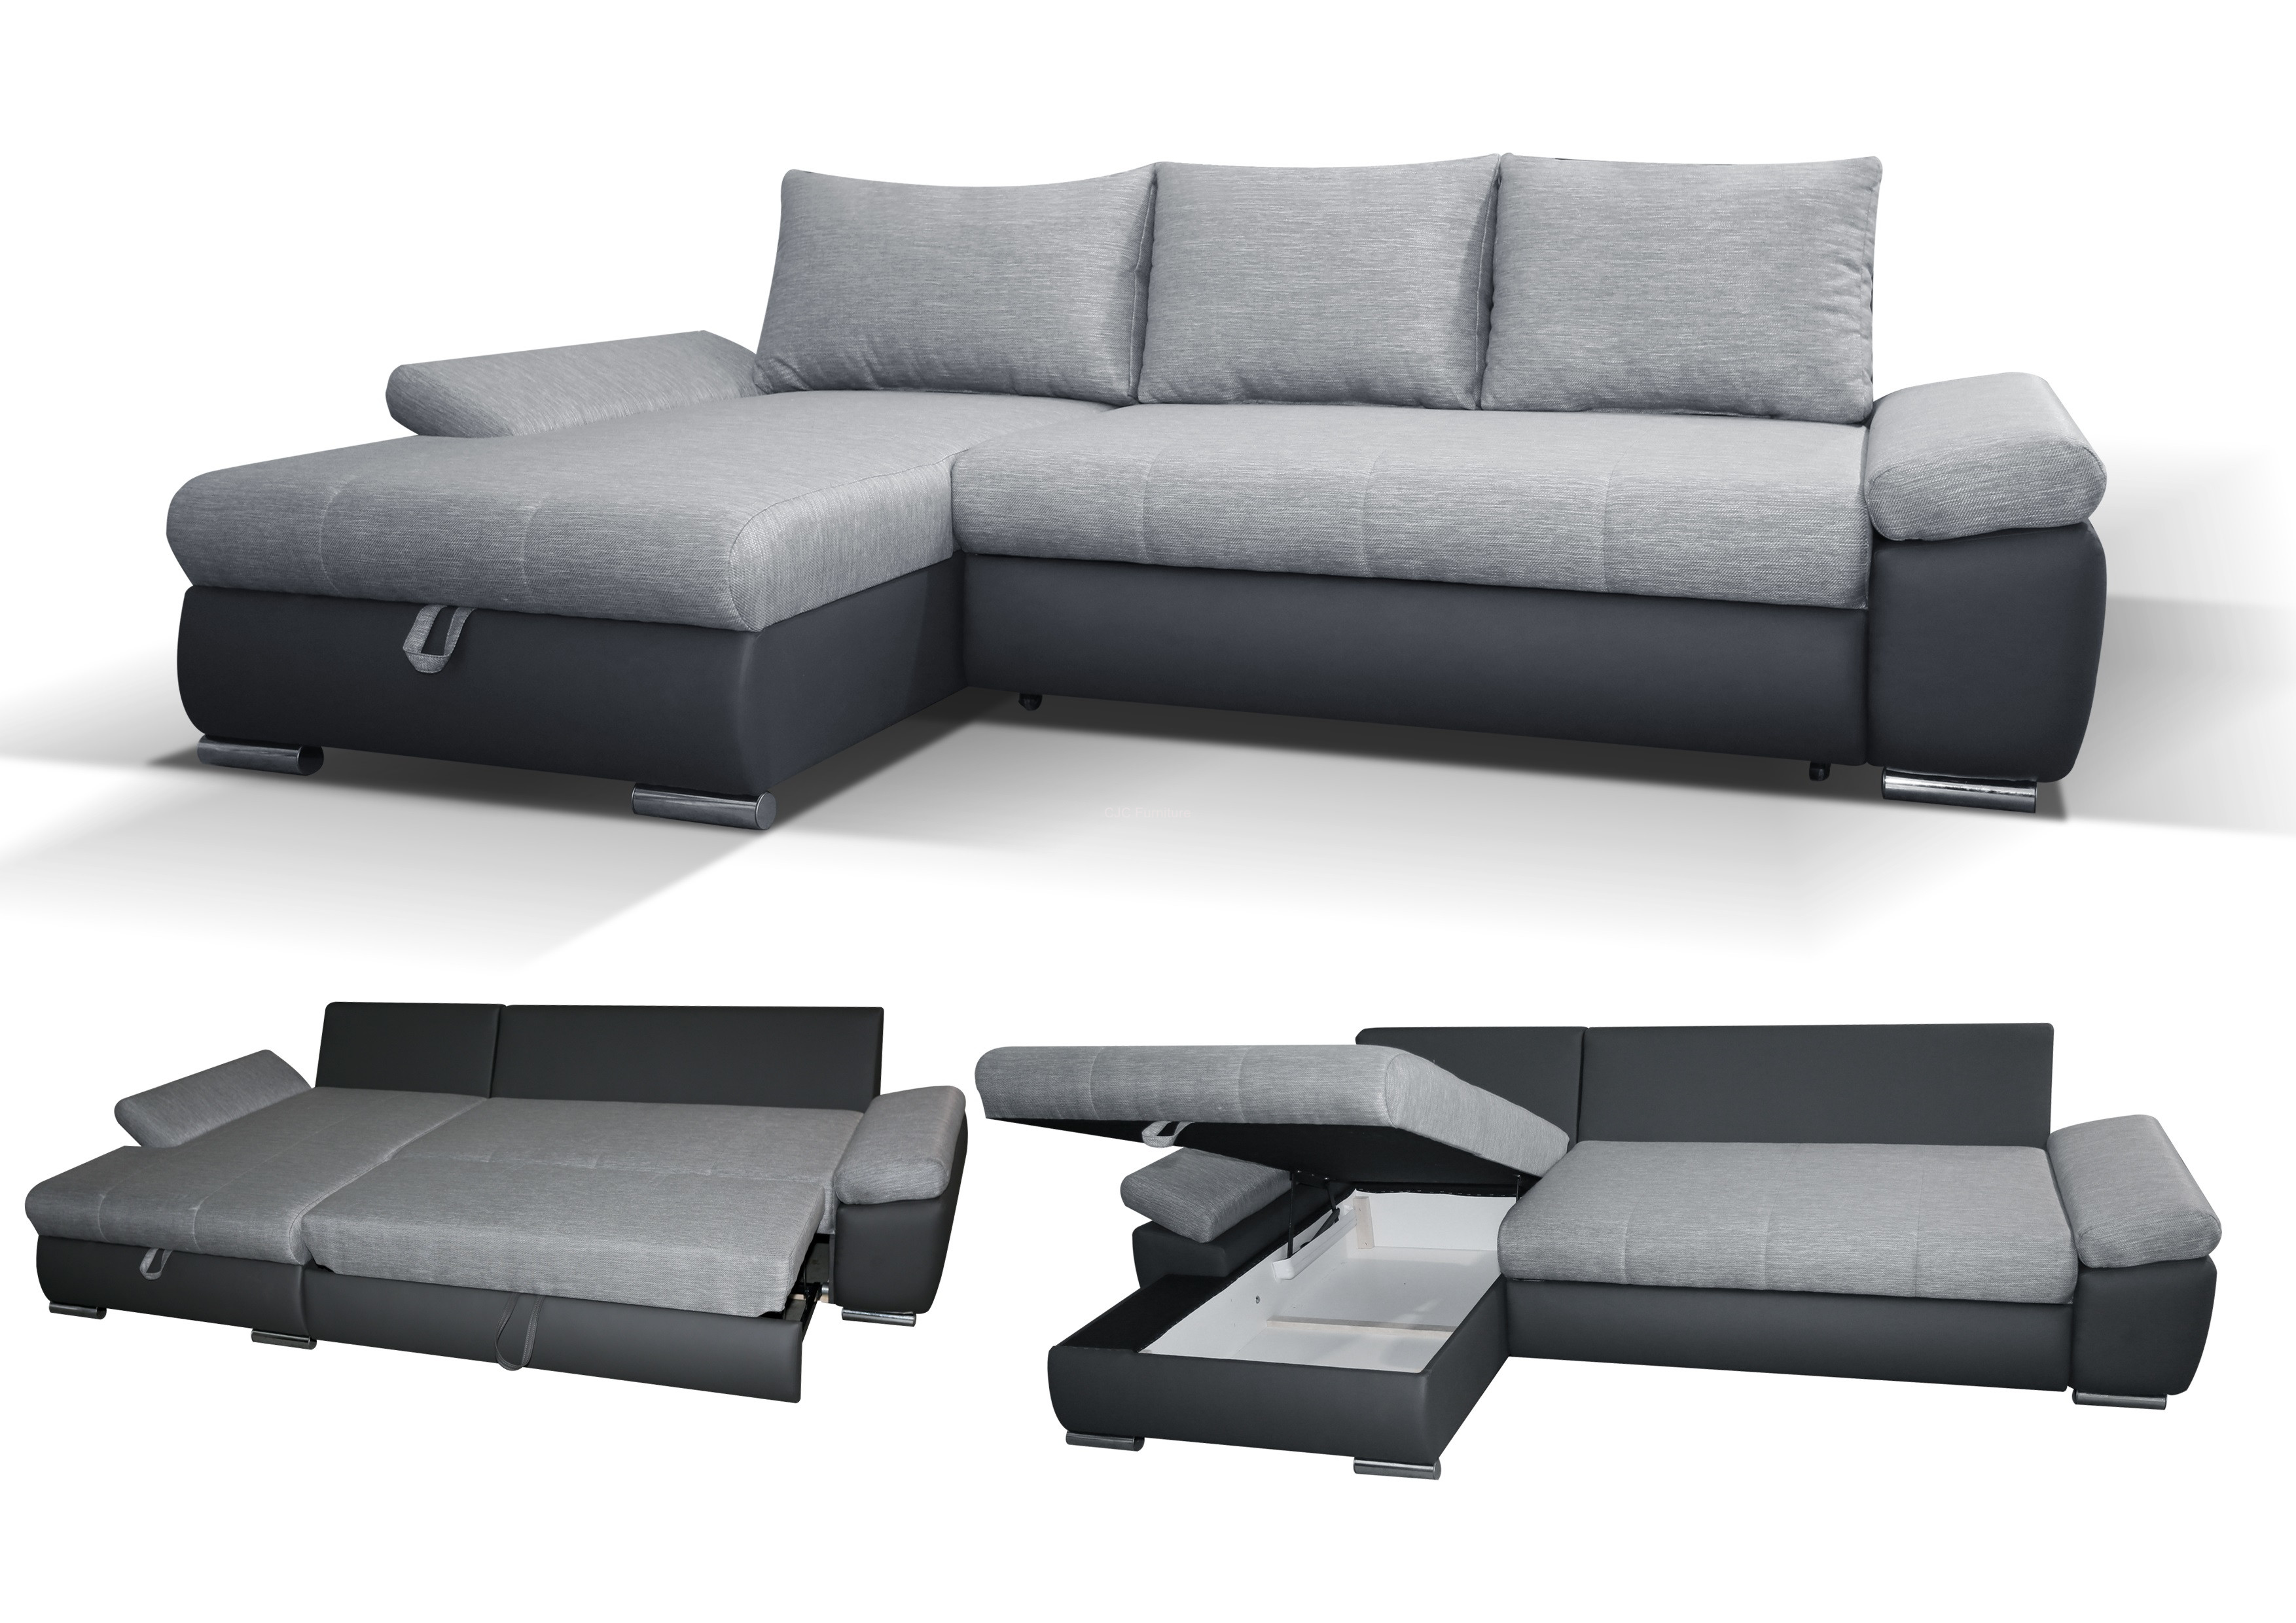 luxury convertible sectional sofa bed online-Inspirational Convertible Sectional sofa Bed Online